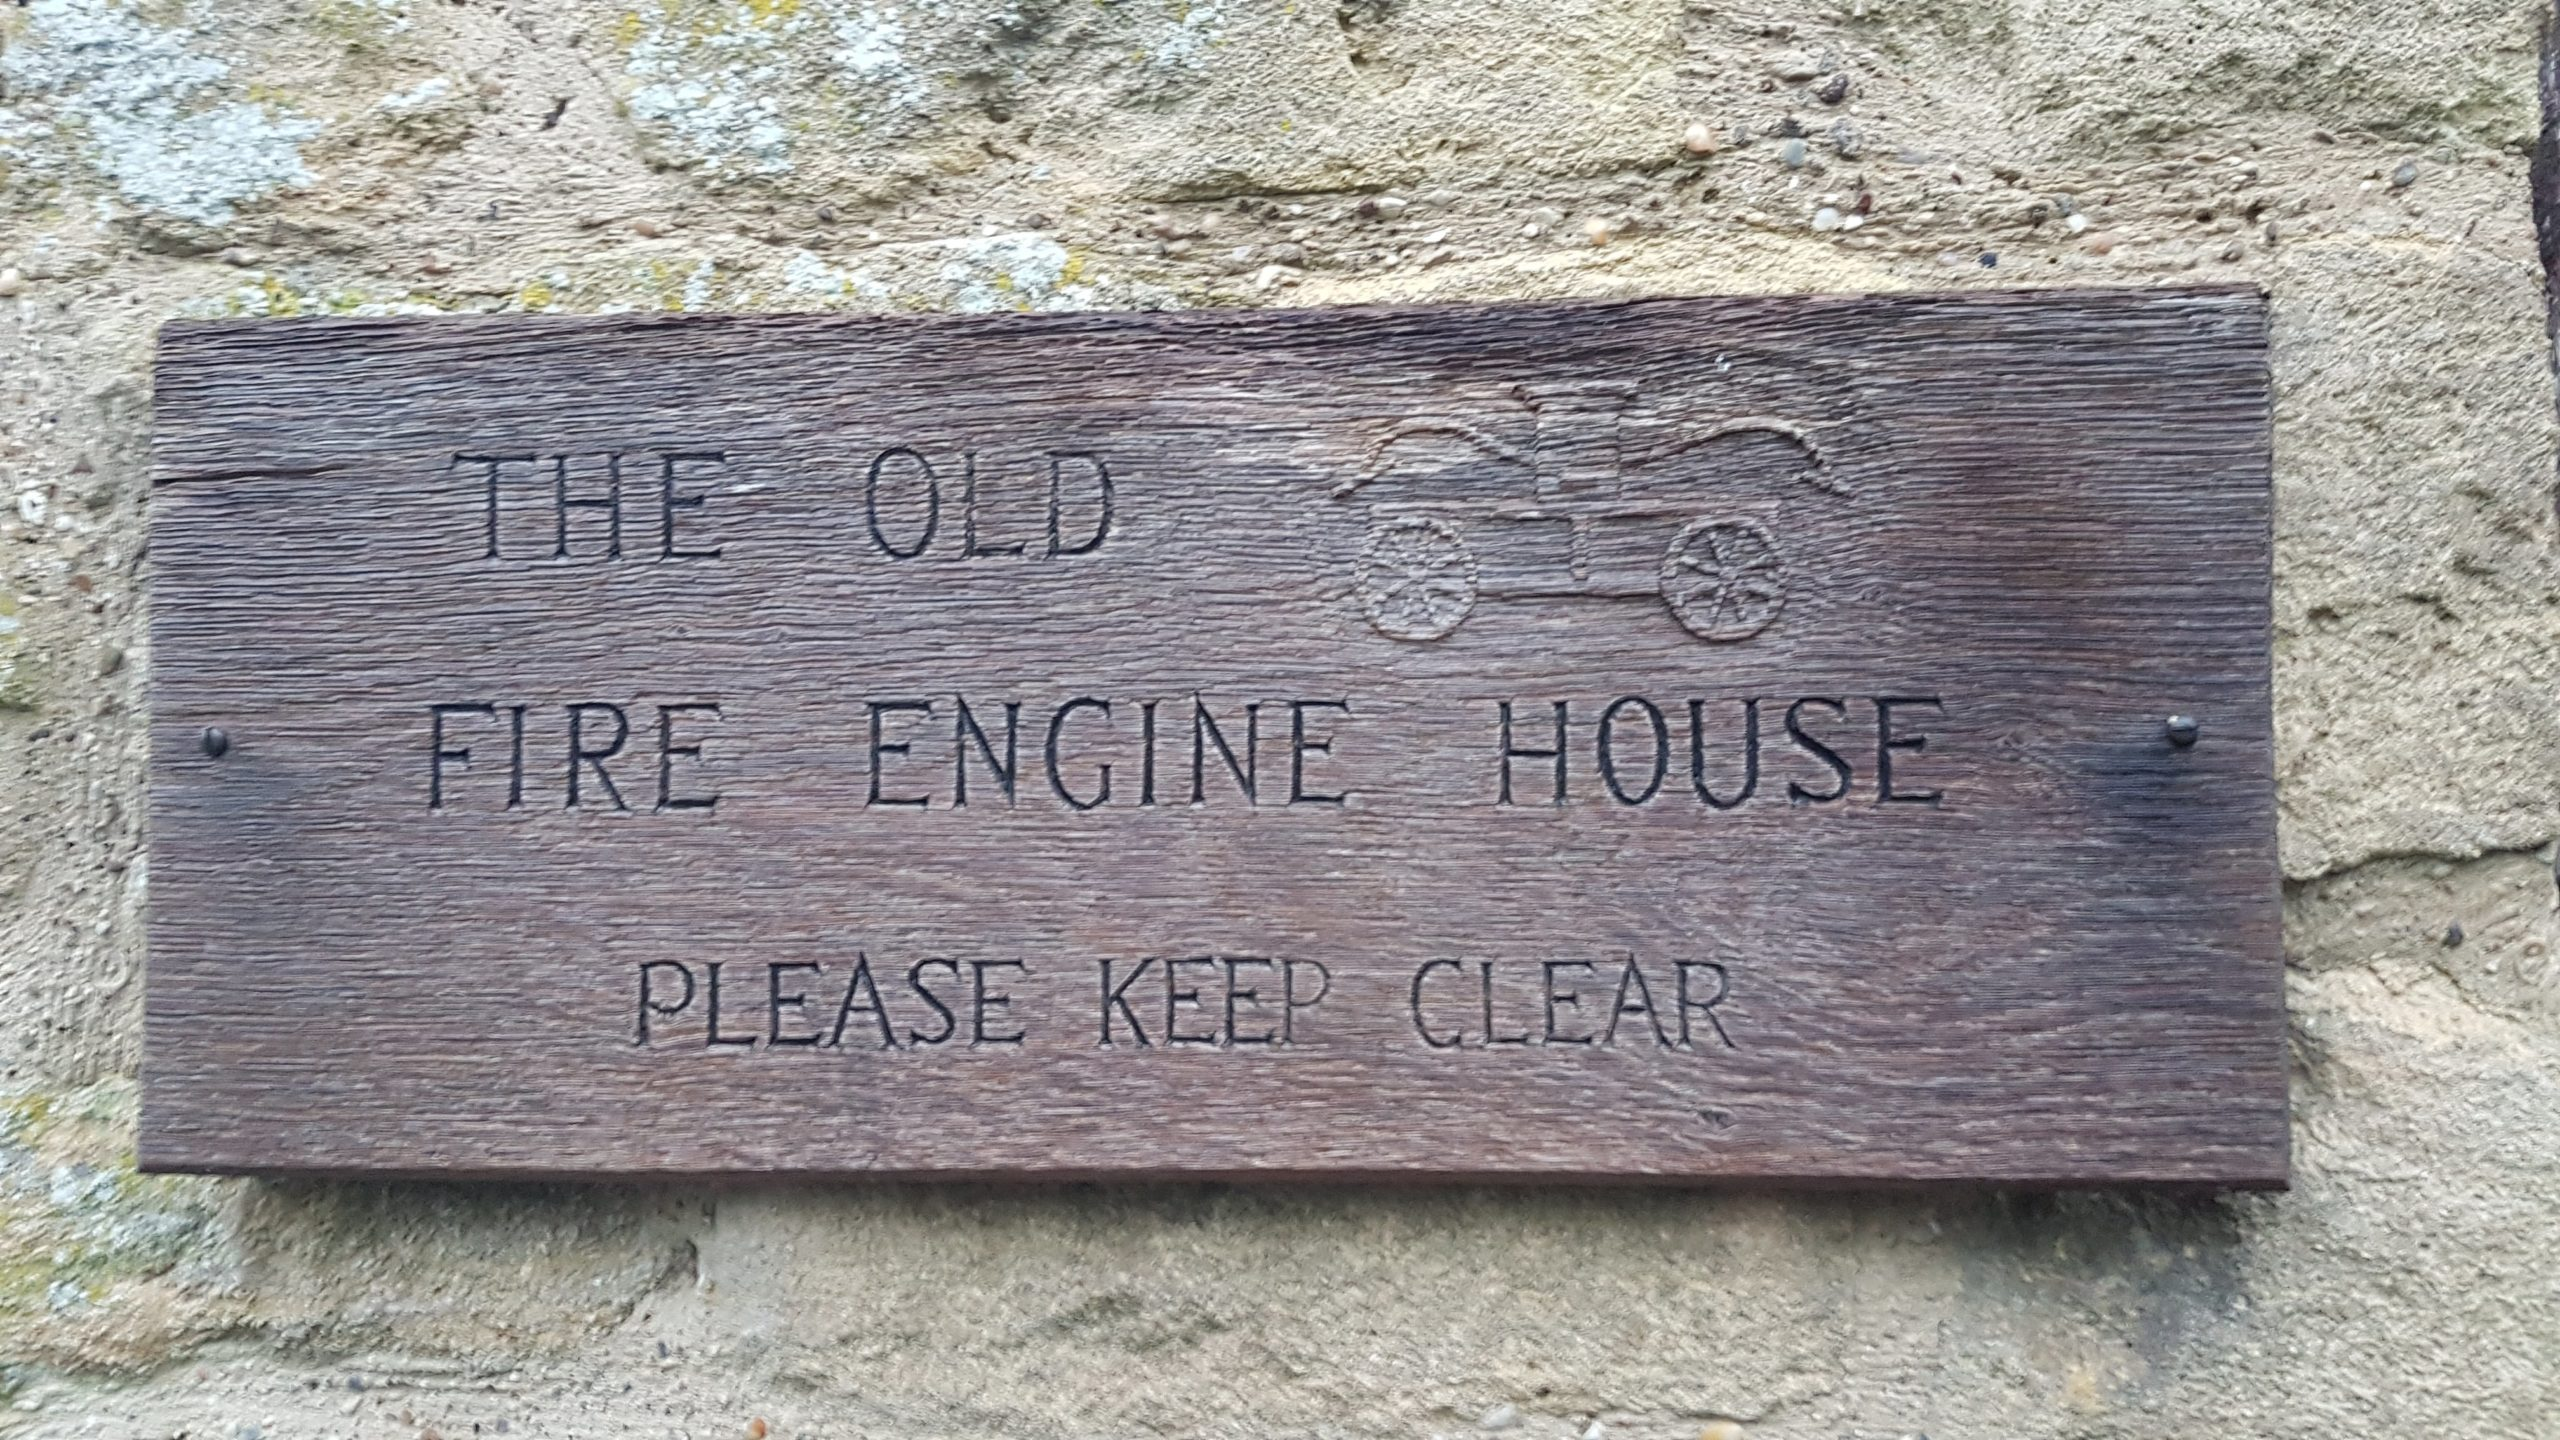 Wooden plaque. Only describes its use as a fire engine house.